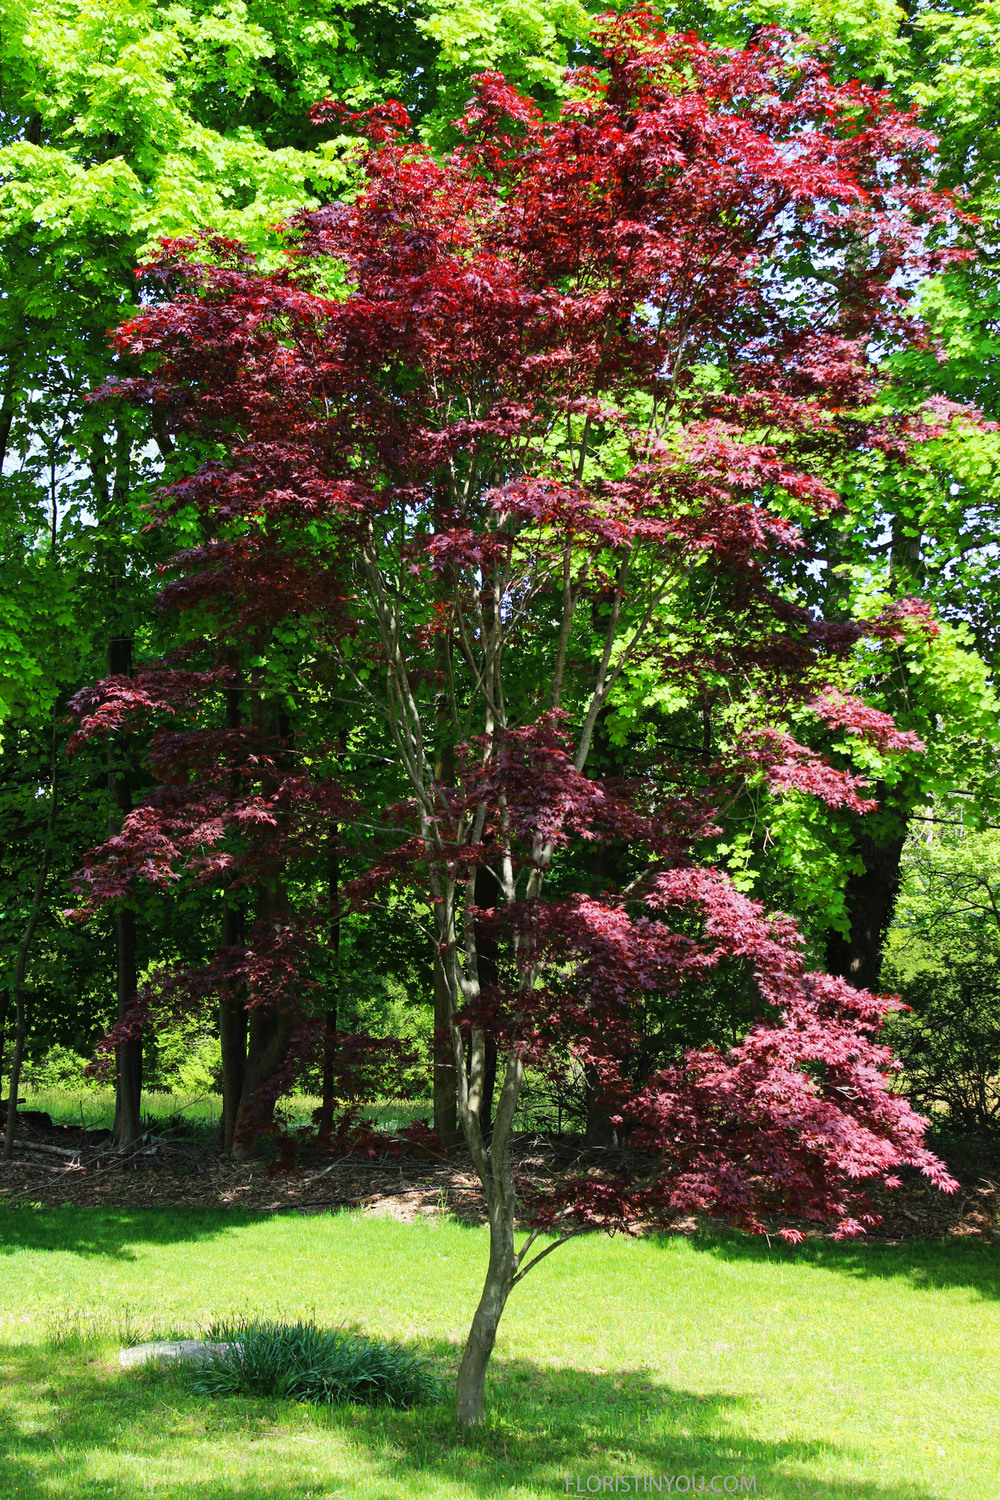 There was also a Japanese maple.